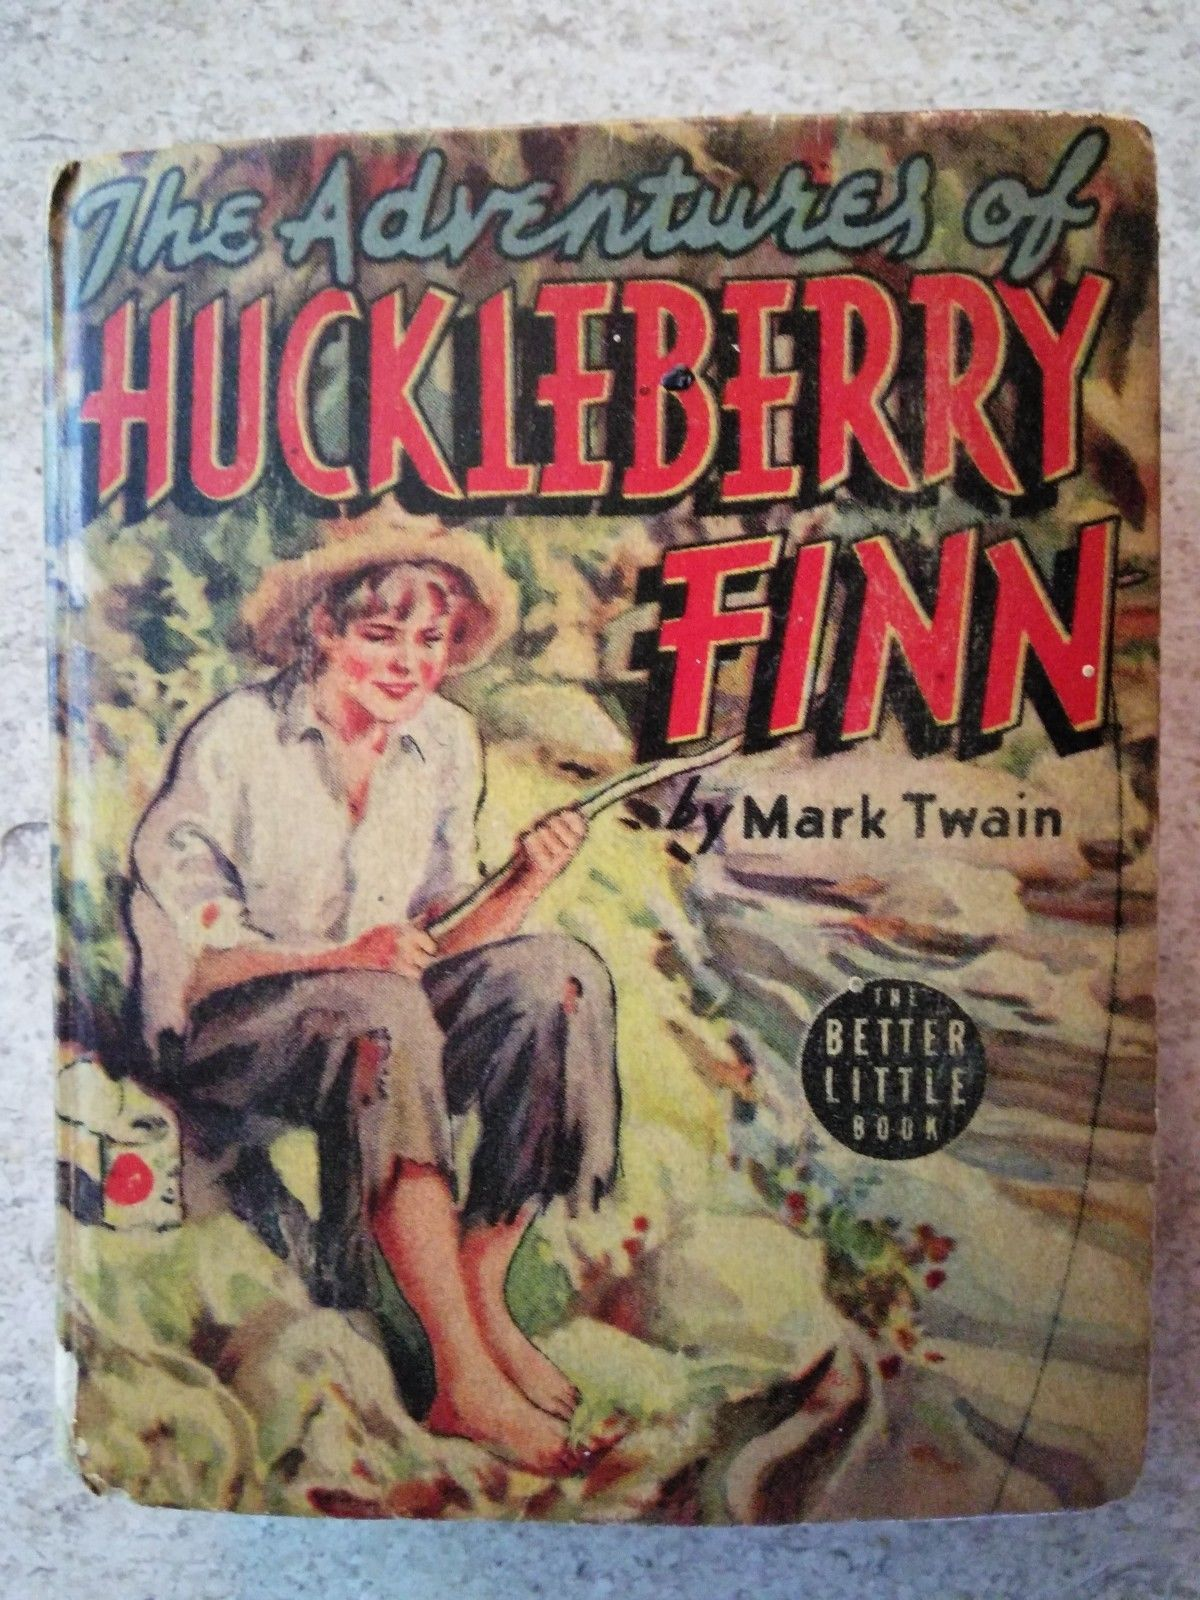 mark twain vs huckleberry finn The adventures of huckleberry finn is an epic of boyhood in it the author describes the adventures of a boy comrade of tom sawyer in a voyage down the great mississippi on a raft huck stands out among mark twain's boy characters, he is the central figure of these episodes, which bring out his.